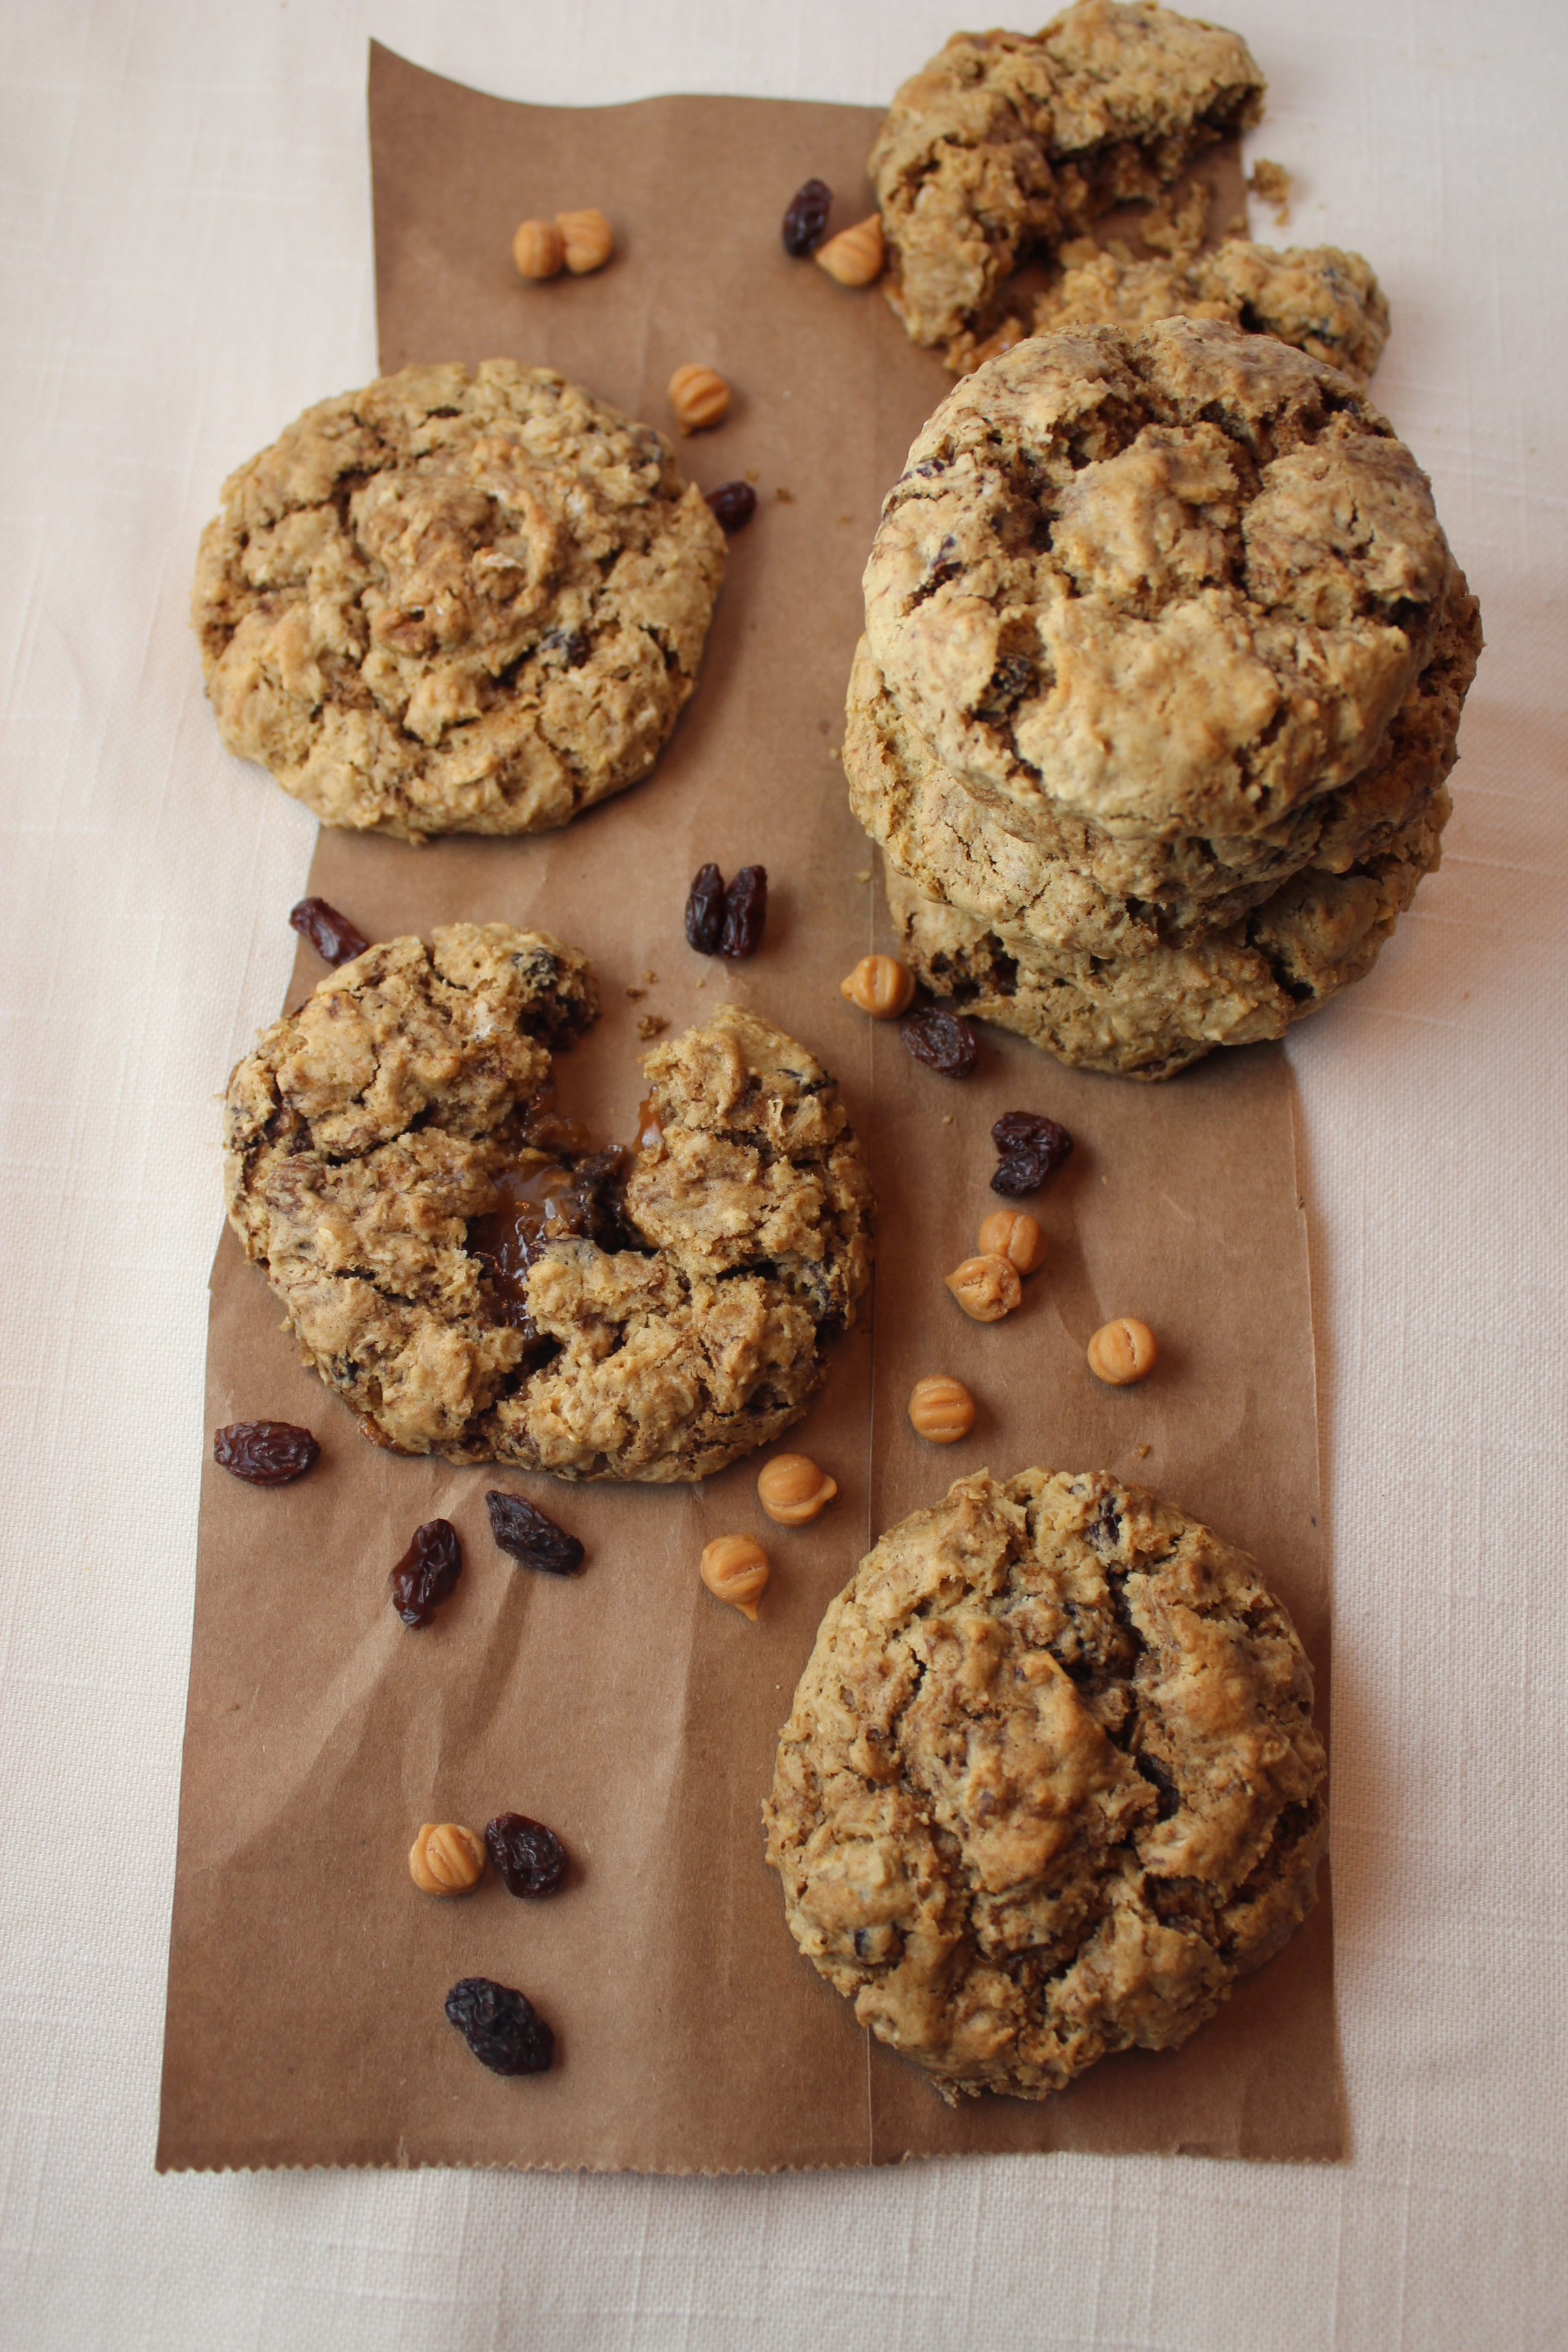 Oatmeal Raisin Caramel Apple Cookies